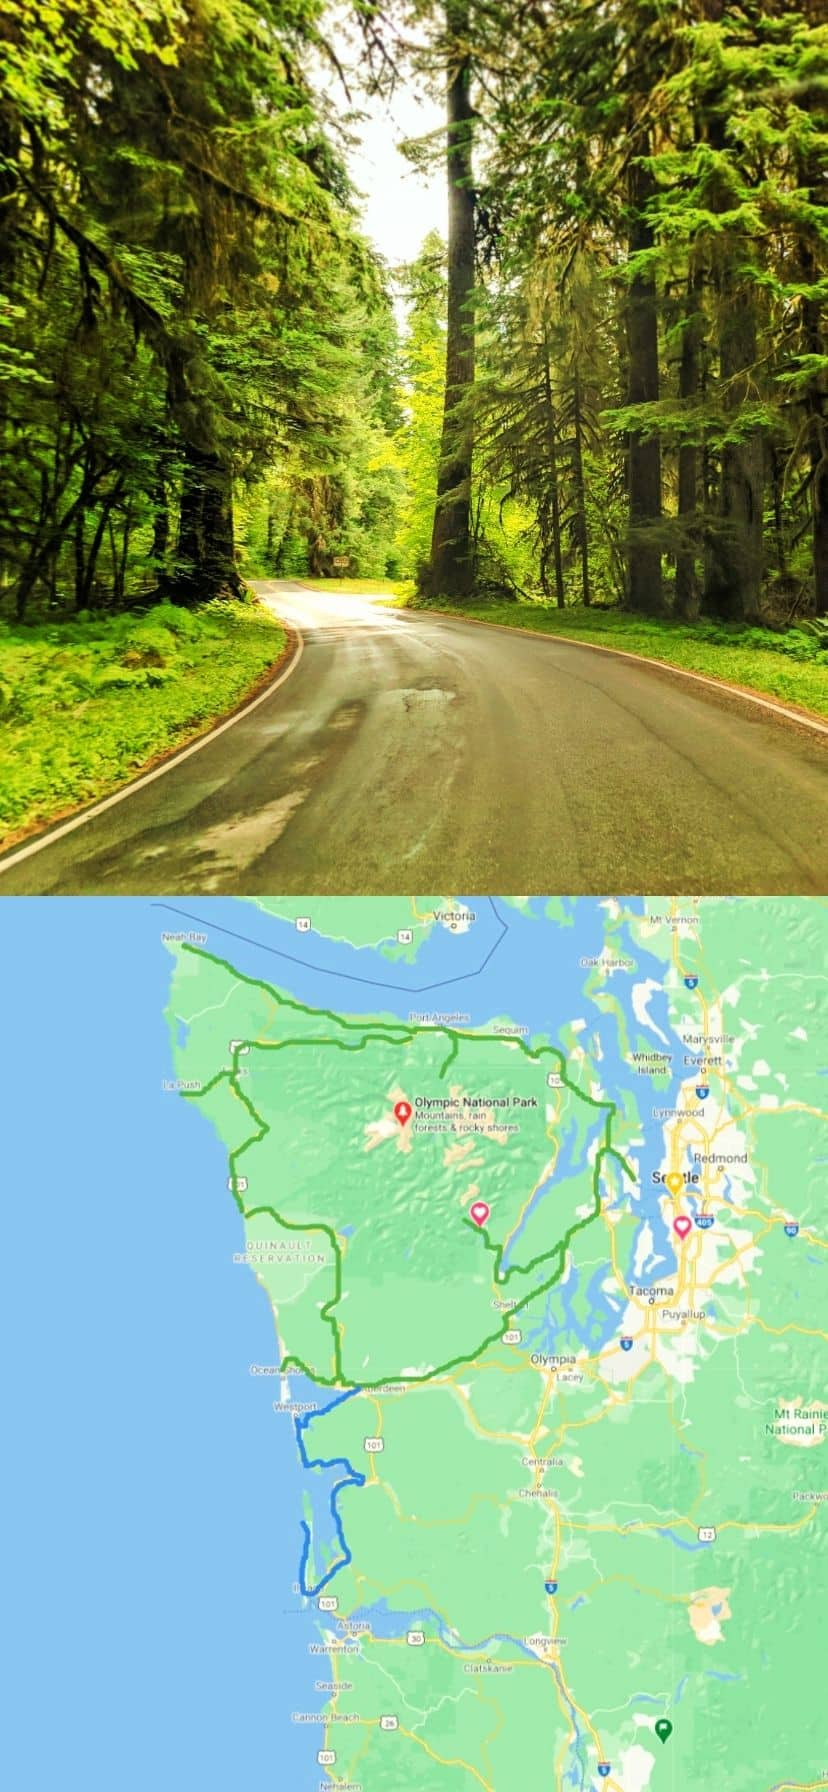 Map of Olympic Peninsula Things to Do